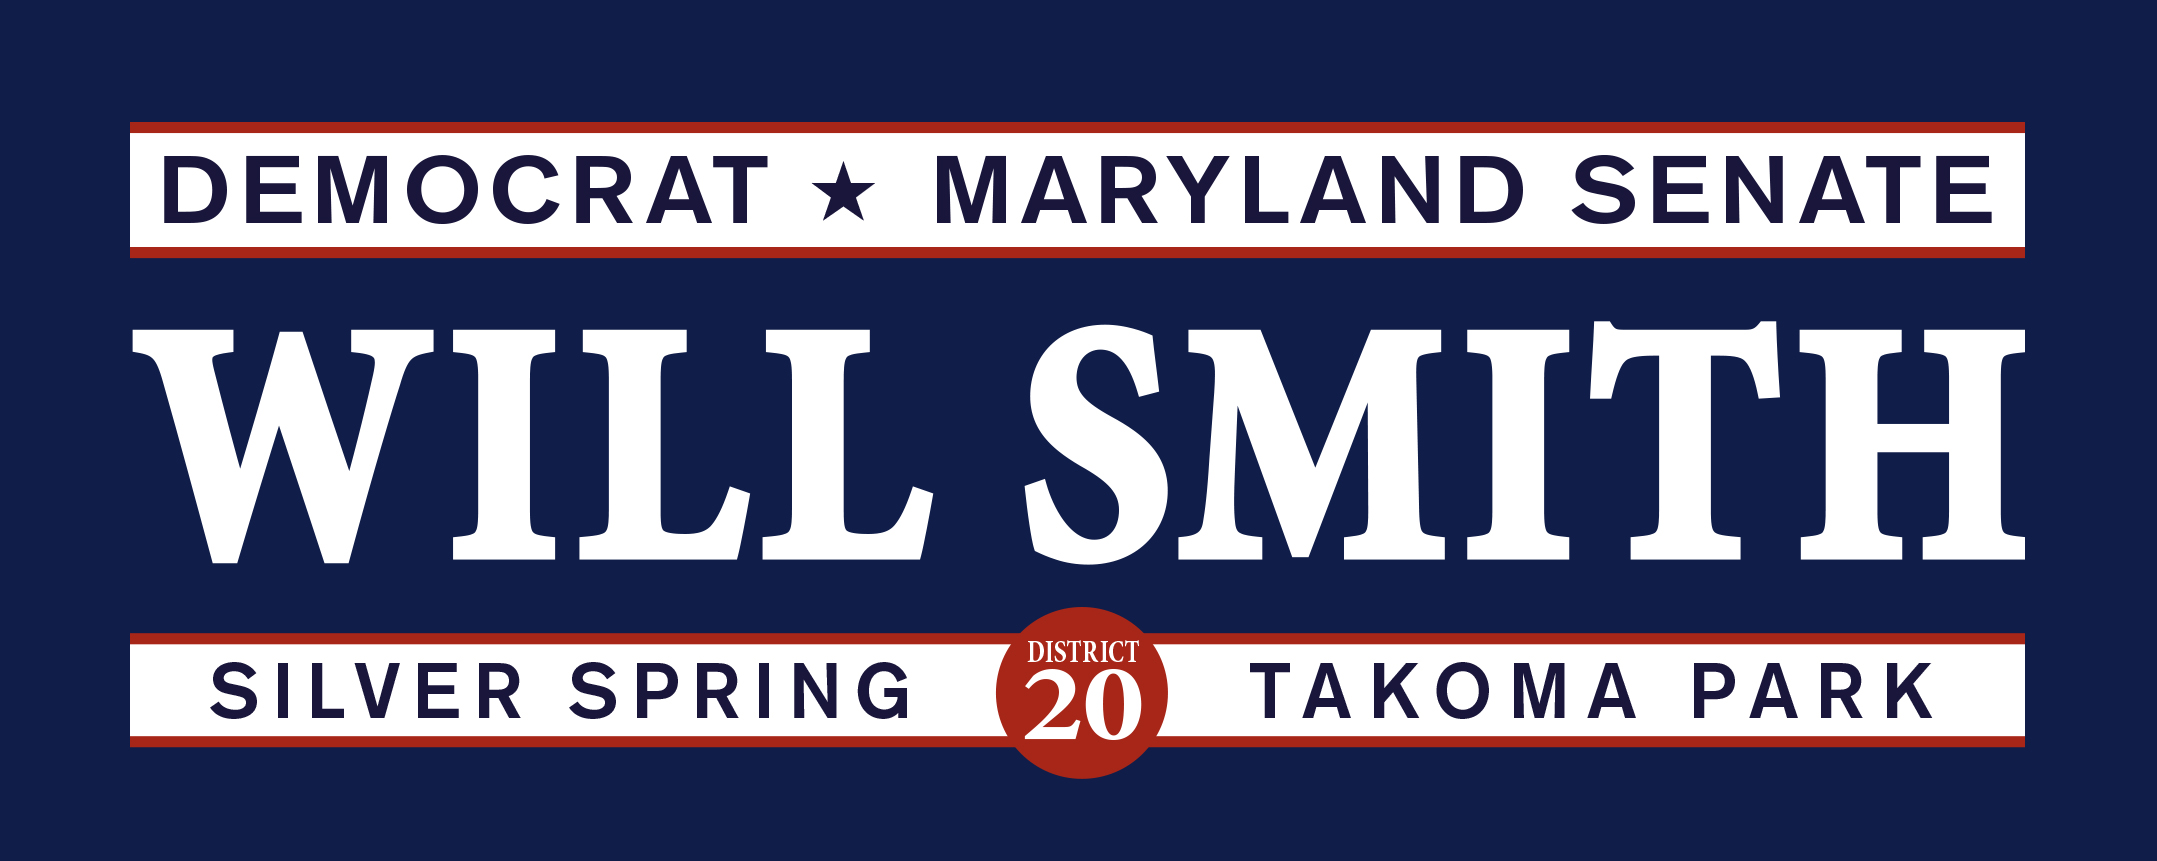 Will Smith for Maryland Senate